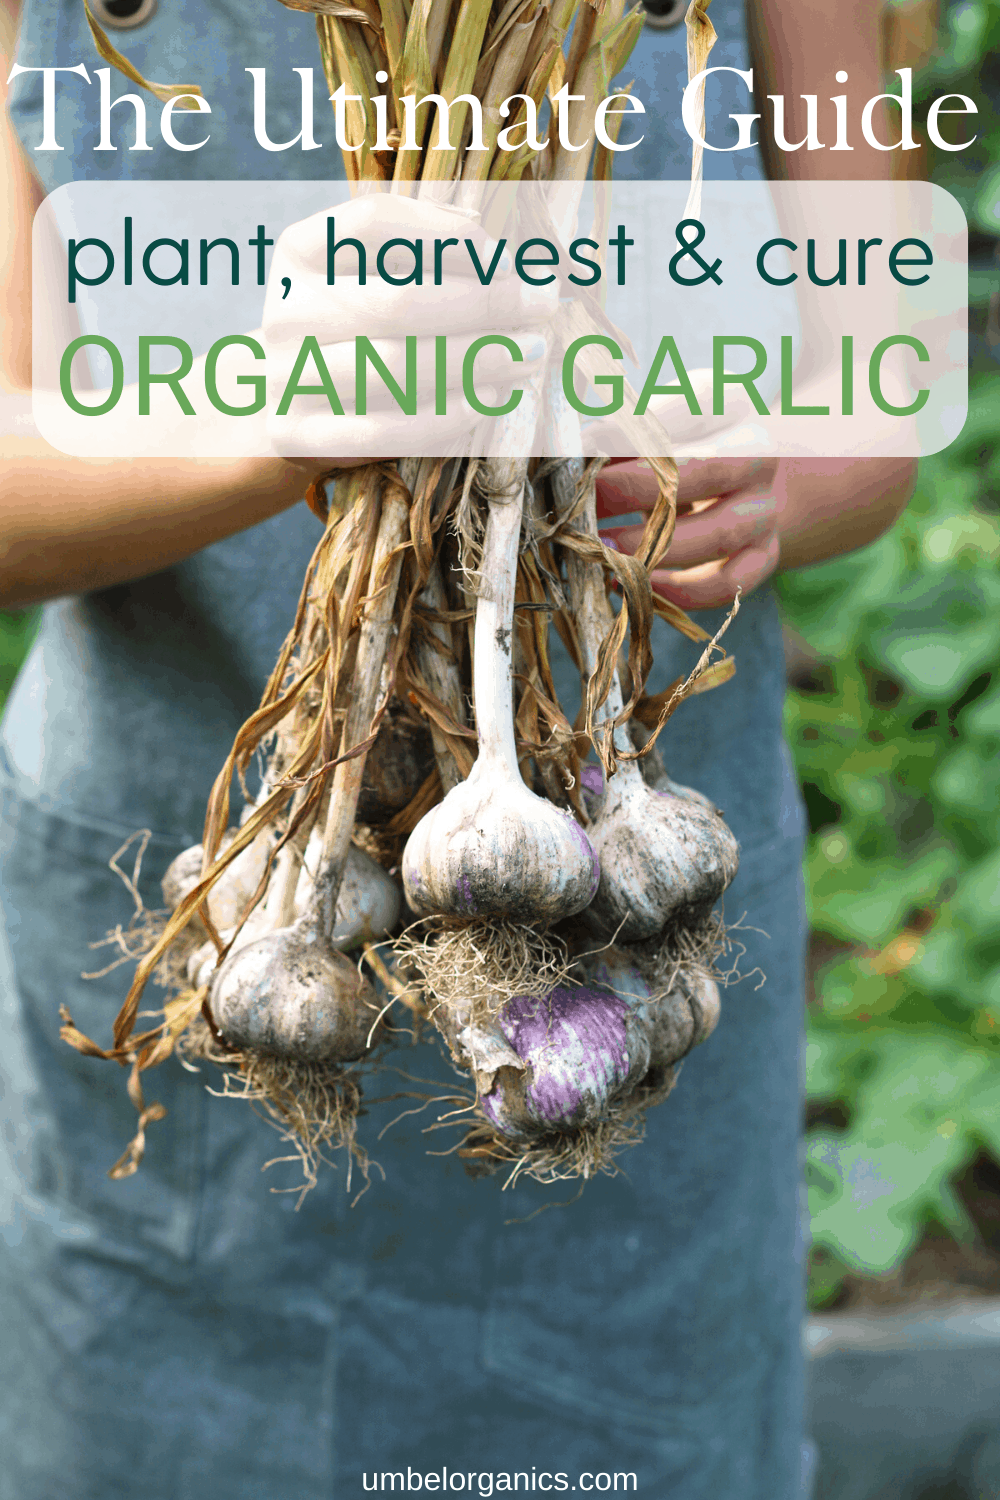 How To Plant, Care For and Harvest Organic Garlic